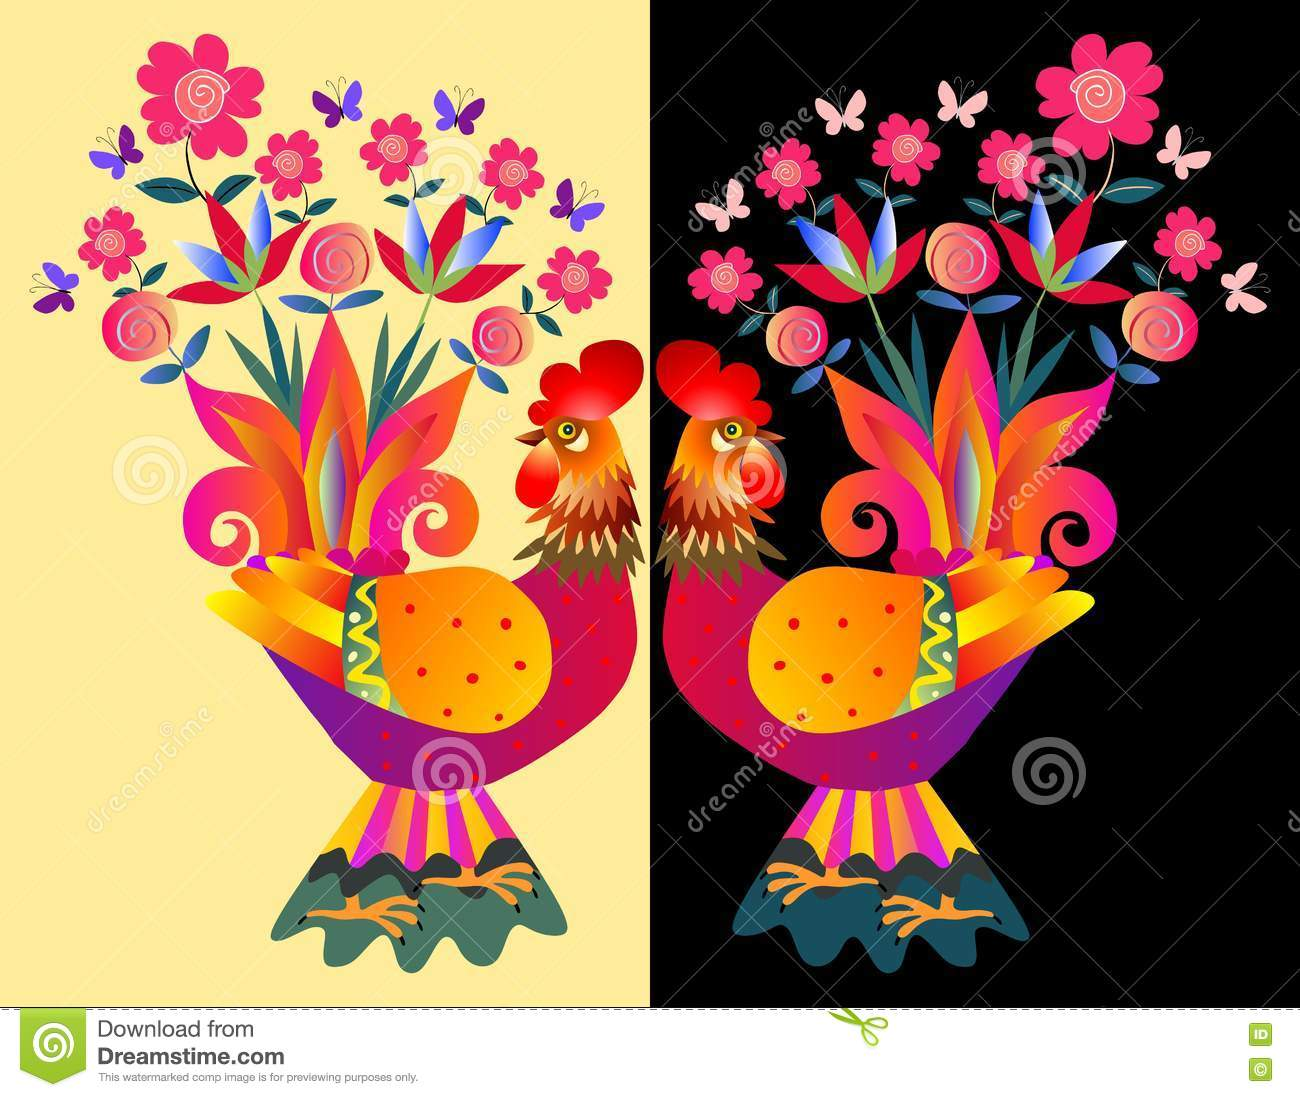 Two bright colorful cockerels - Vases with flowers.